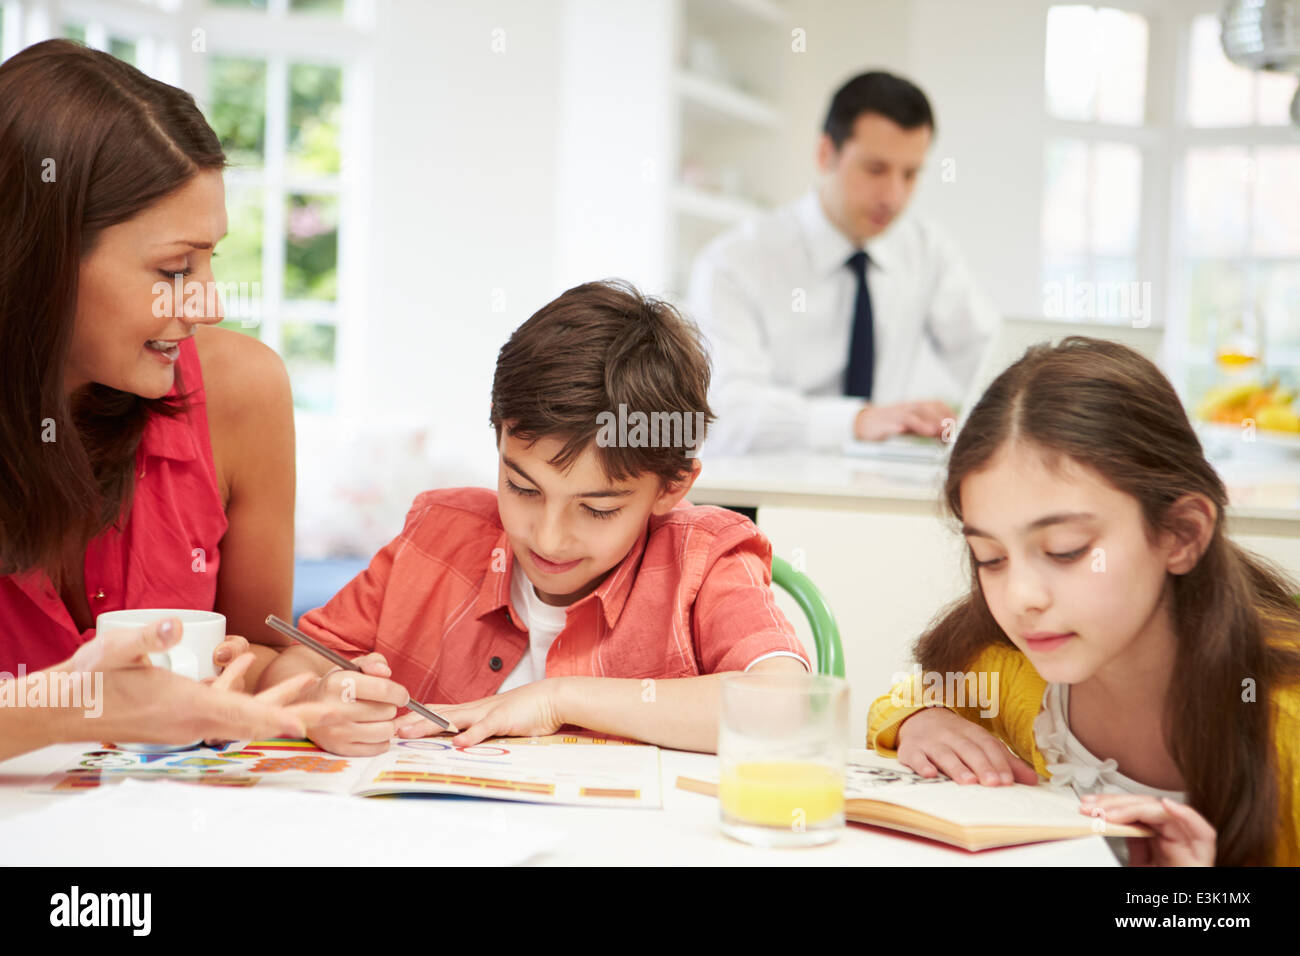 Mum Helps Children With Homework As Dad Works In Background - Stock Image